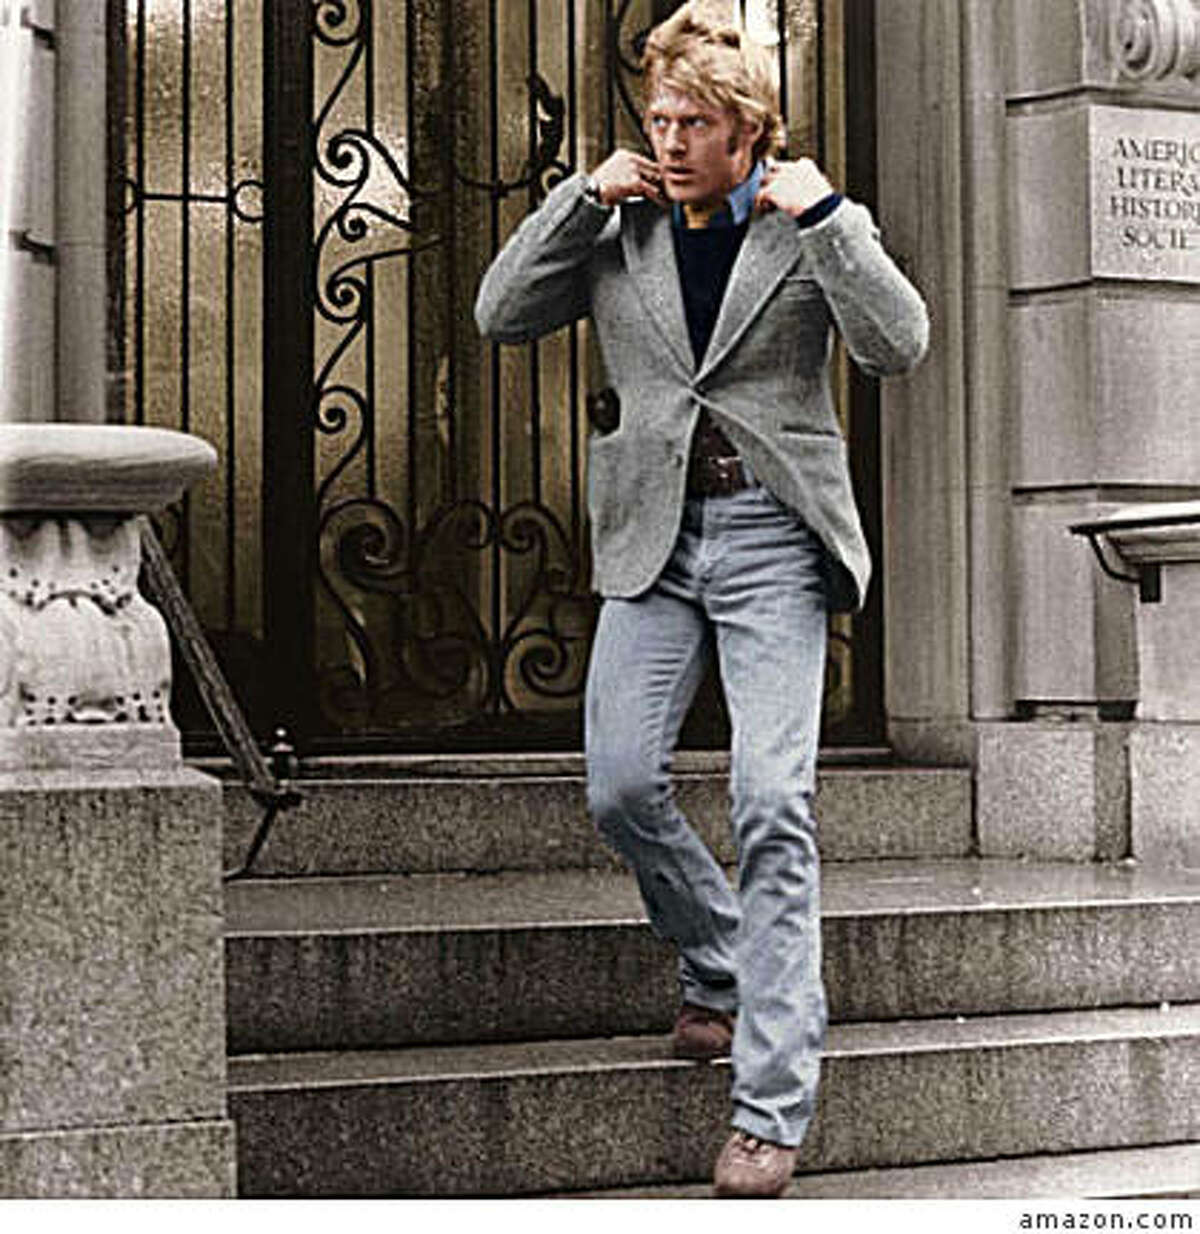 Robert Redford in 3 DAYS OF THE CONDOR